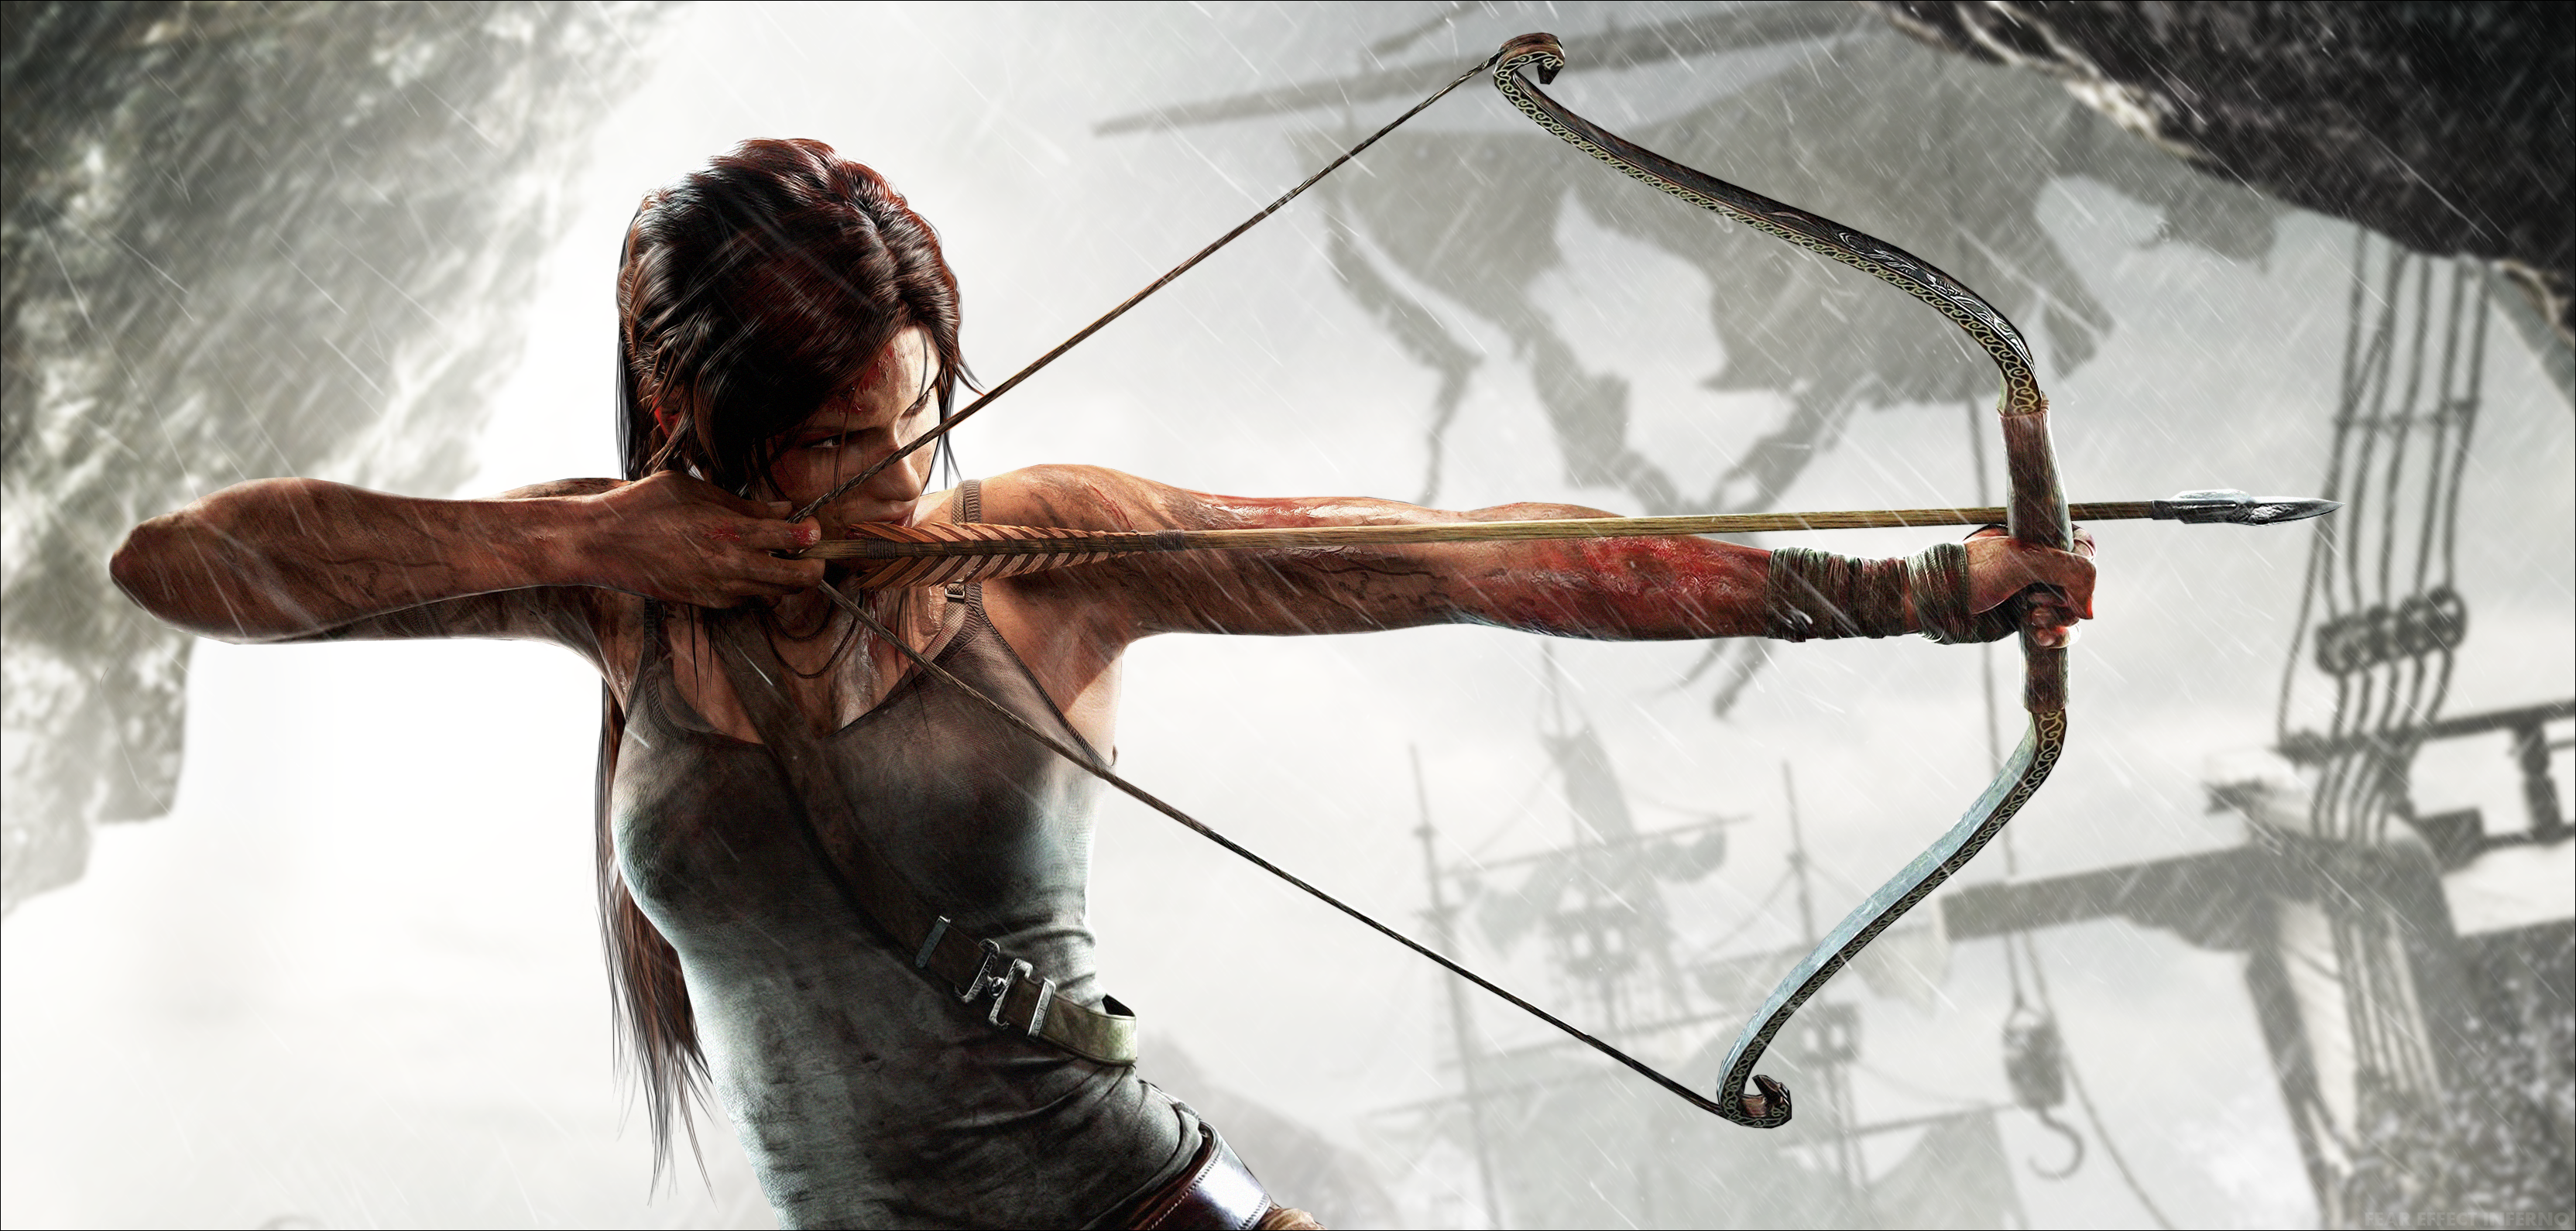 553 Tomb Raider Hd Wallpapers Background Images Wallpaper Abyss